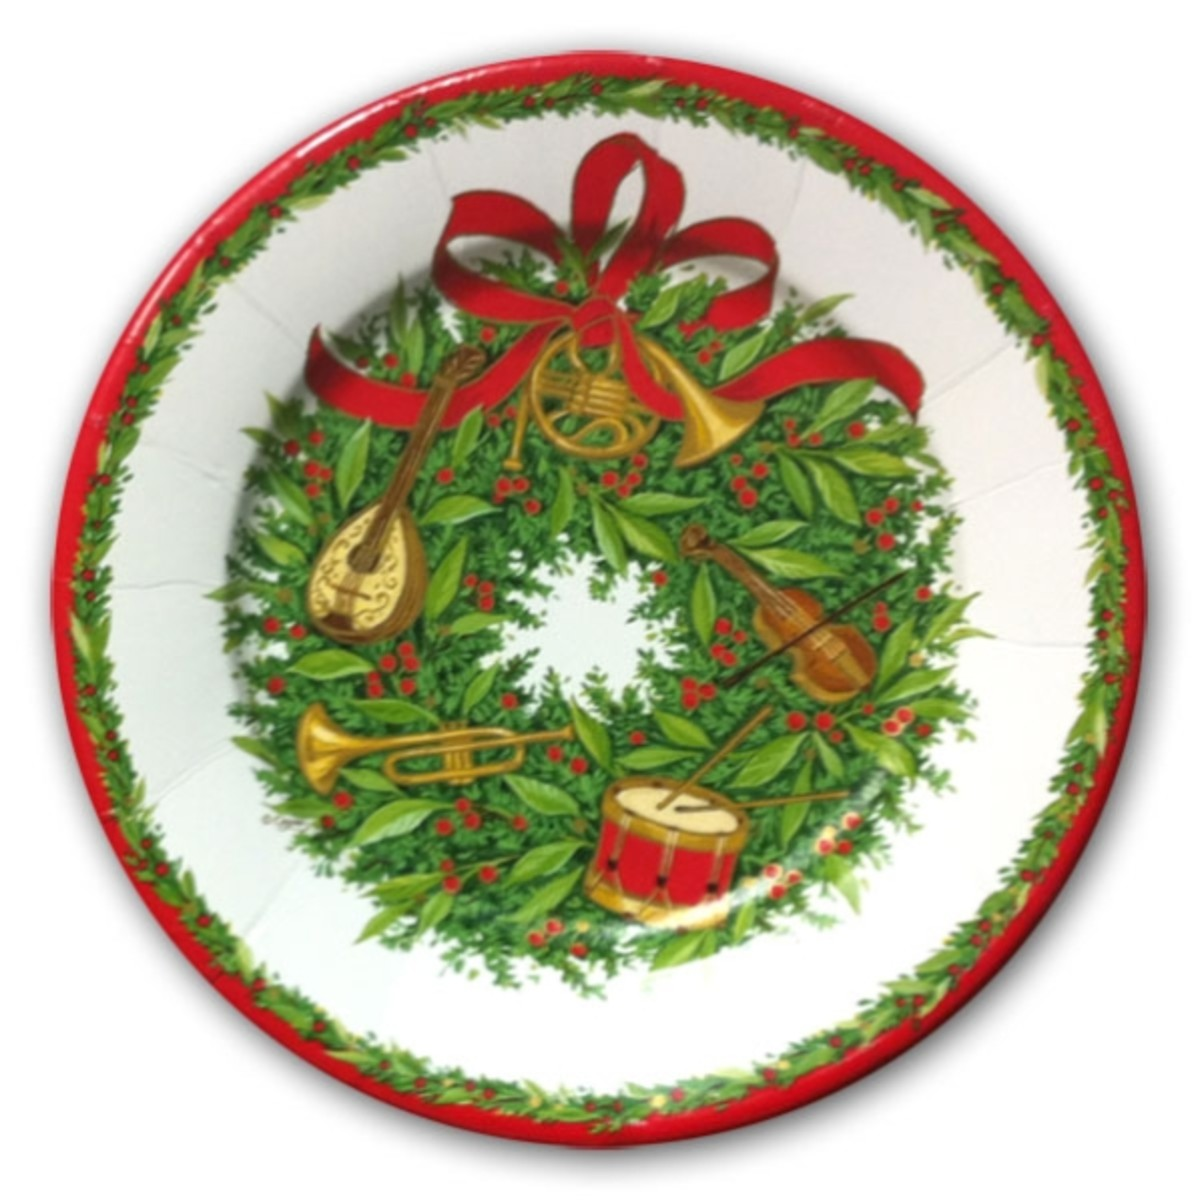 Wreath Christmas Dinner Plate